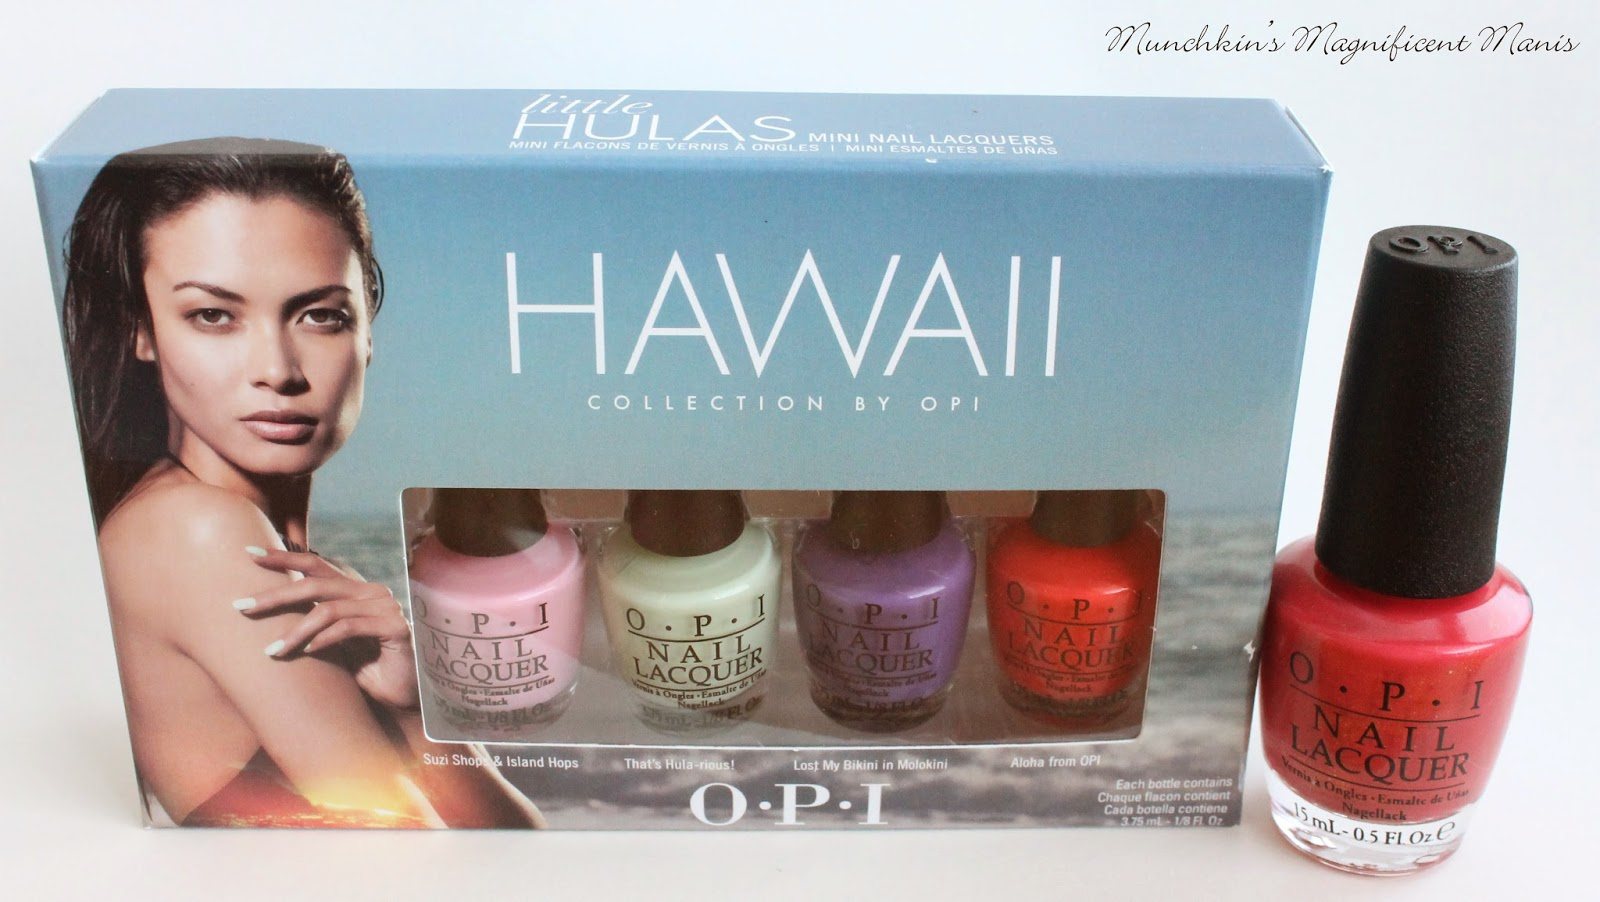 OPI Hawaii Collection, 2015 Spring collection